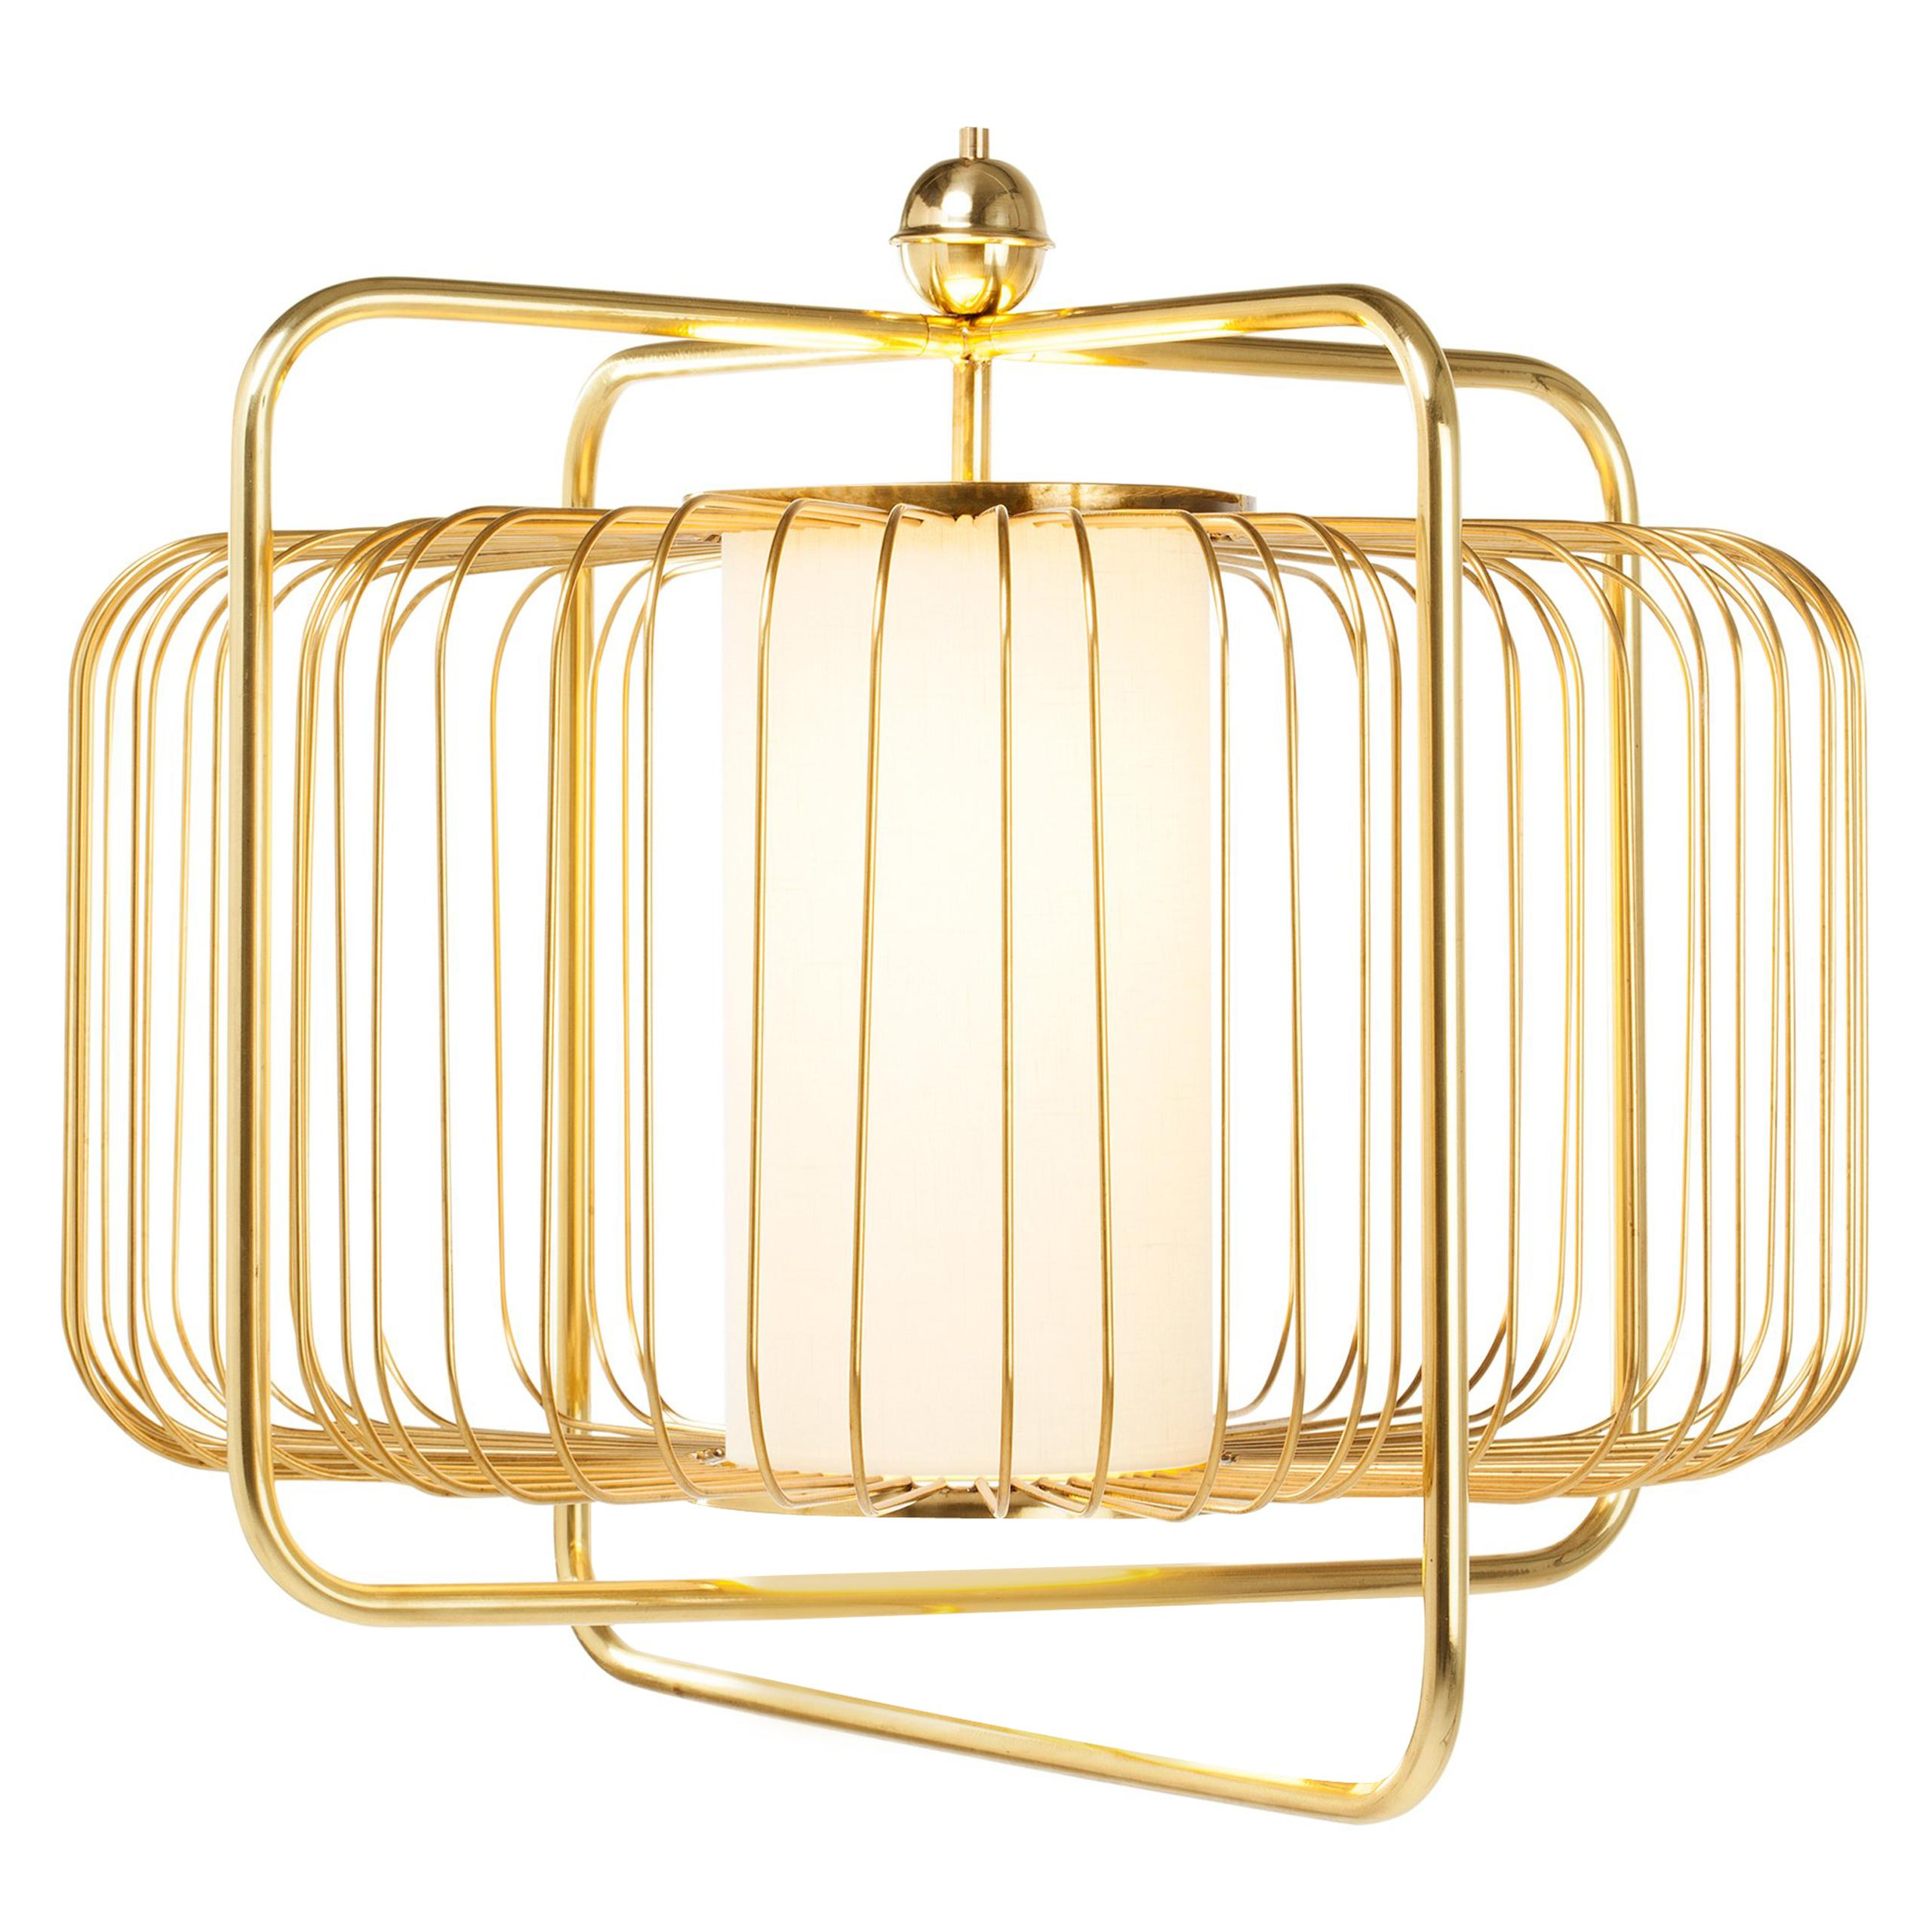 Contemporary Art Deco inspired Jules I Pendant Lamp in Brass and Linen